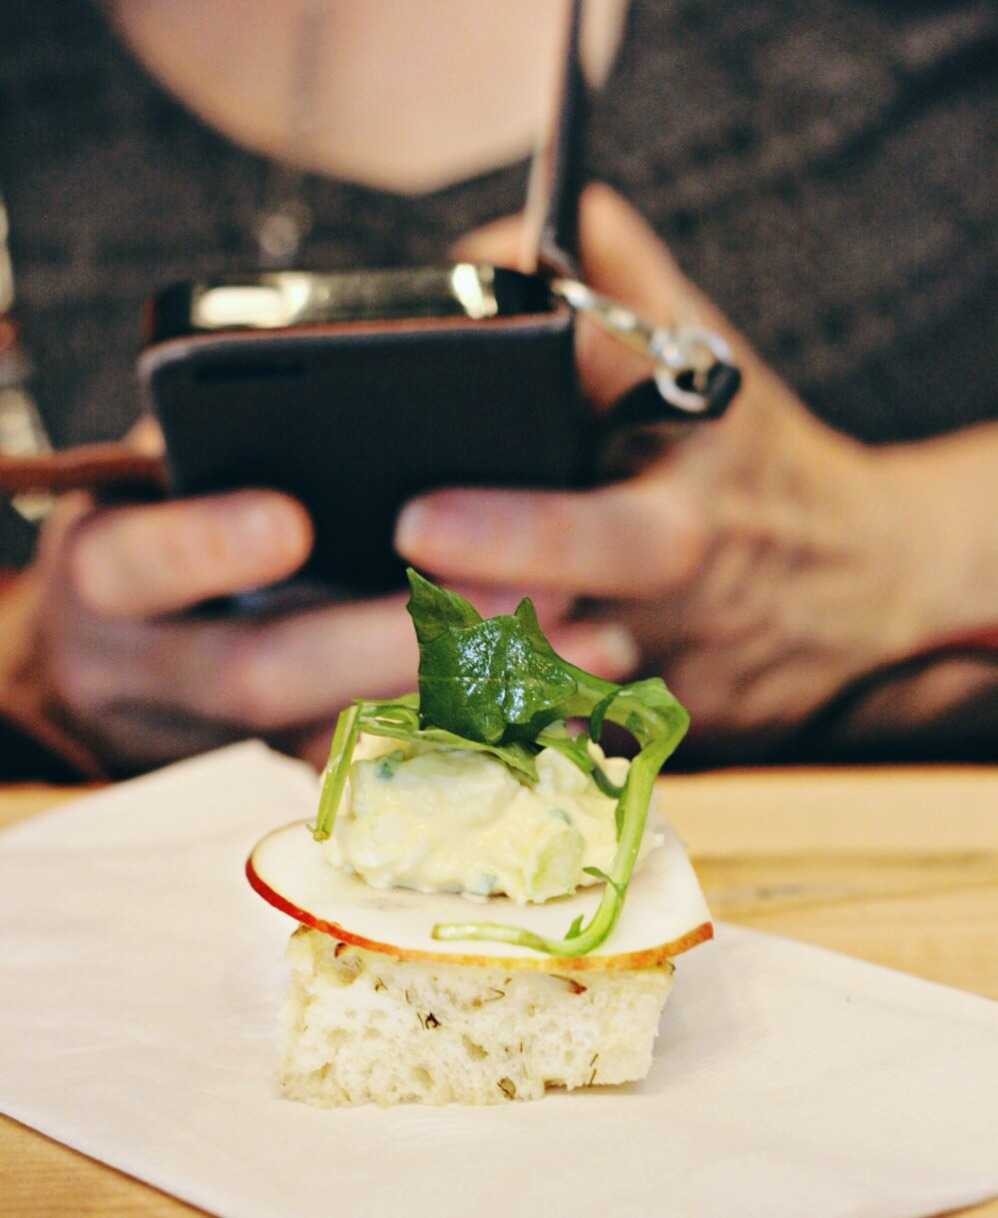 farm to chef Dill bread with apple slice, egg salad topped with arugula 2